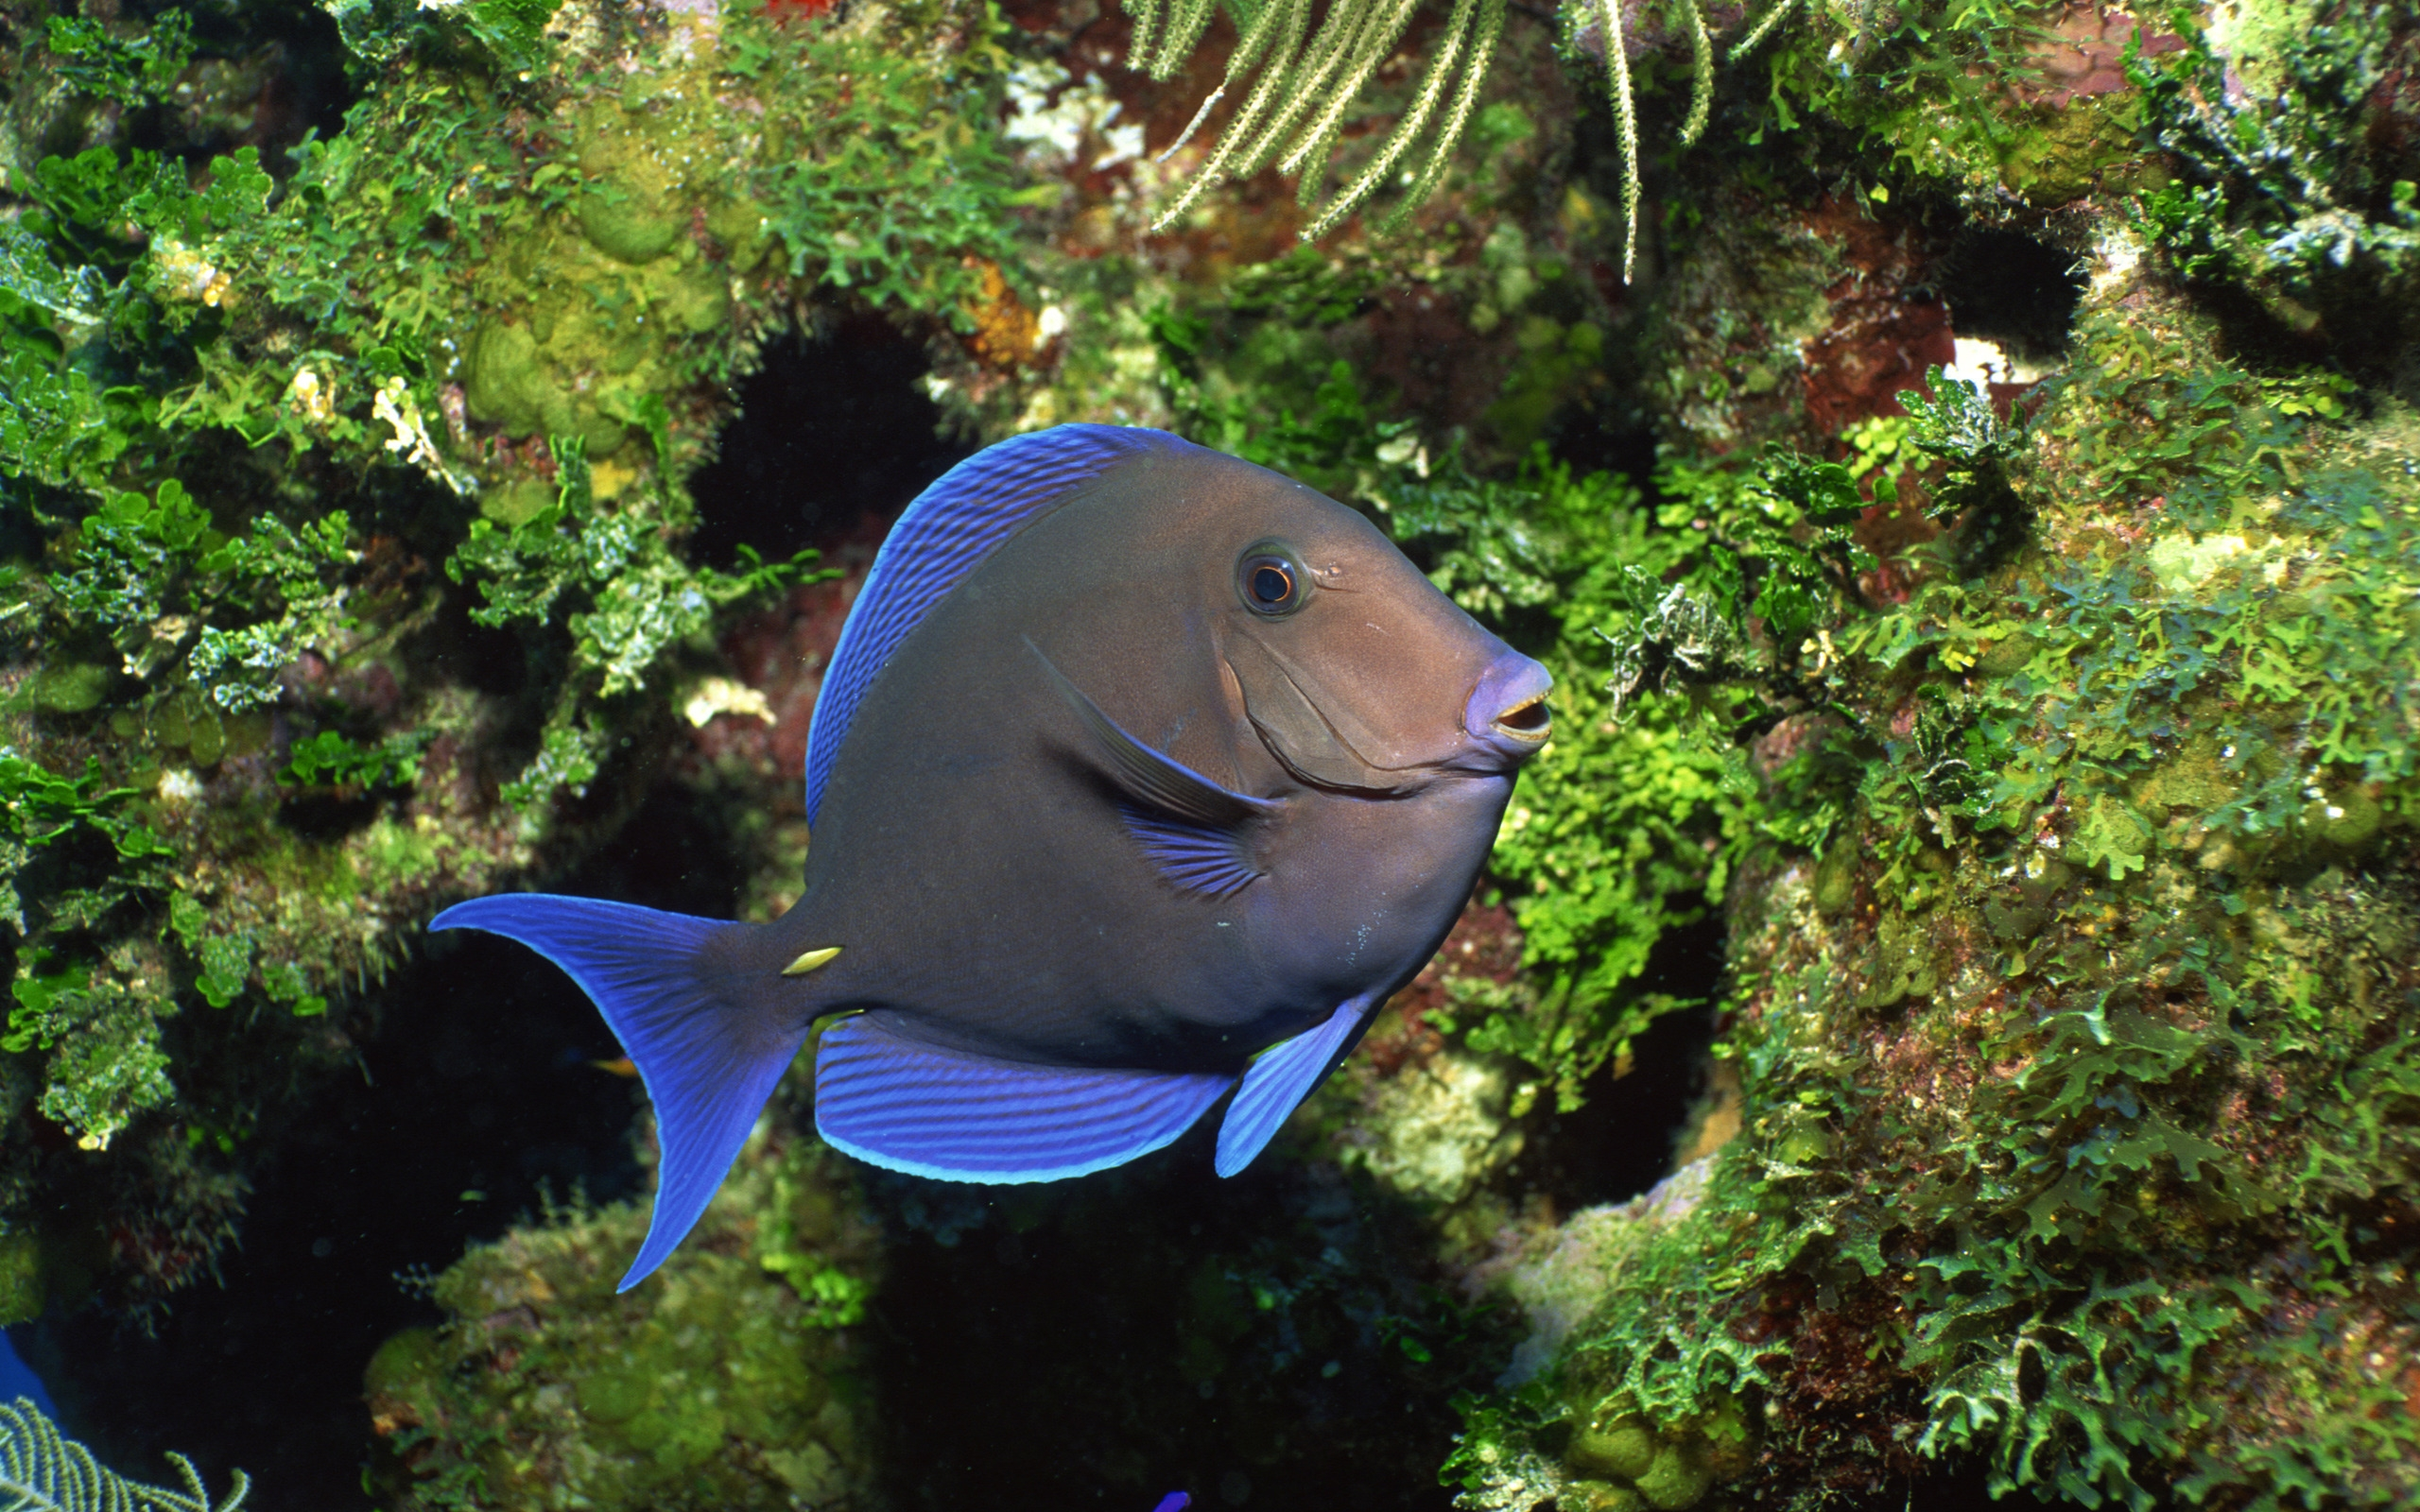 Lonly Fish Underwater for 2560 x 1600 widescreen resolution